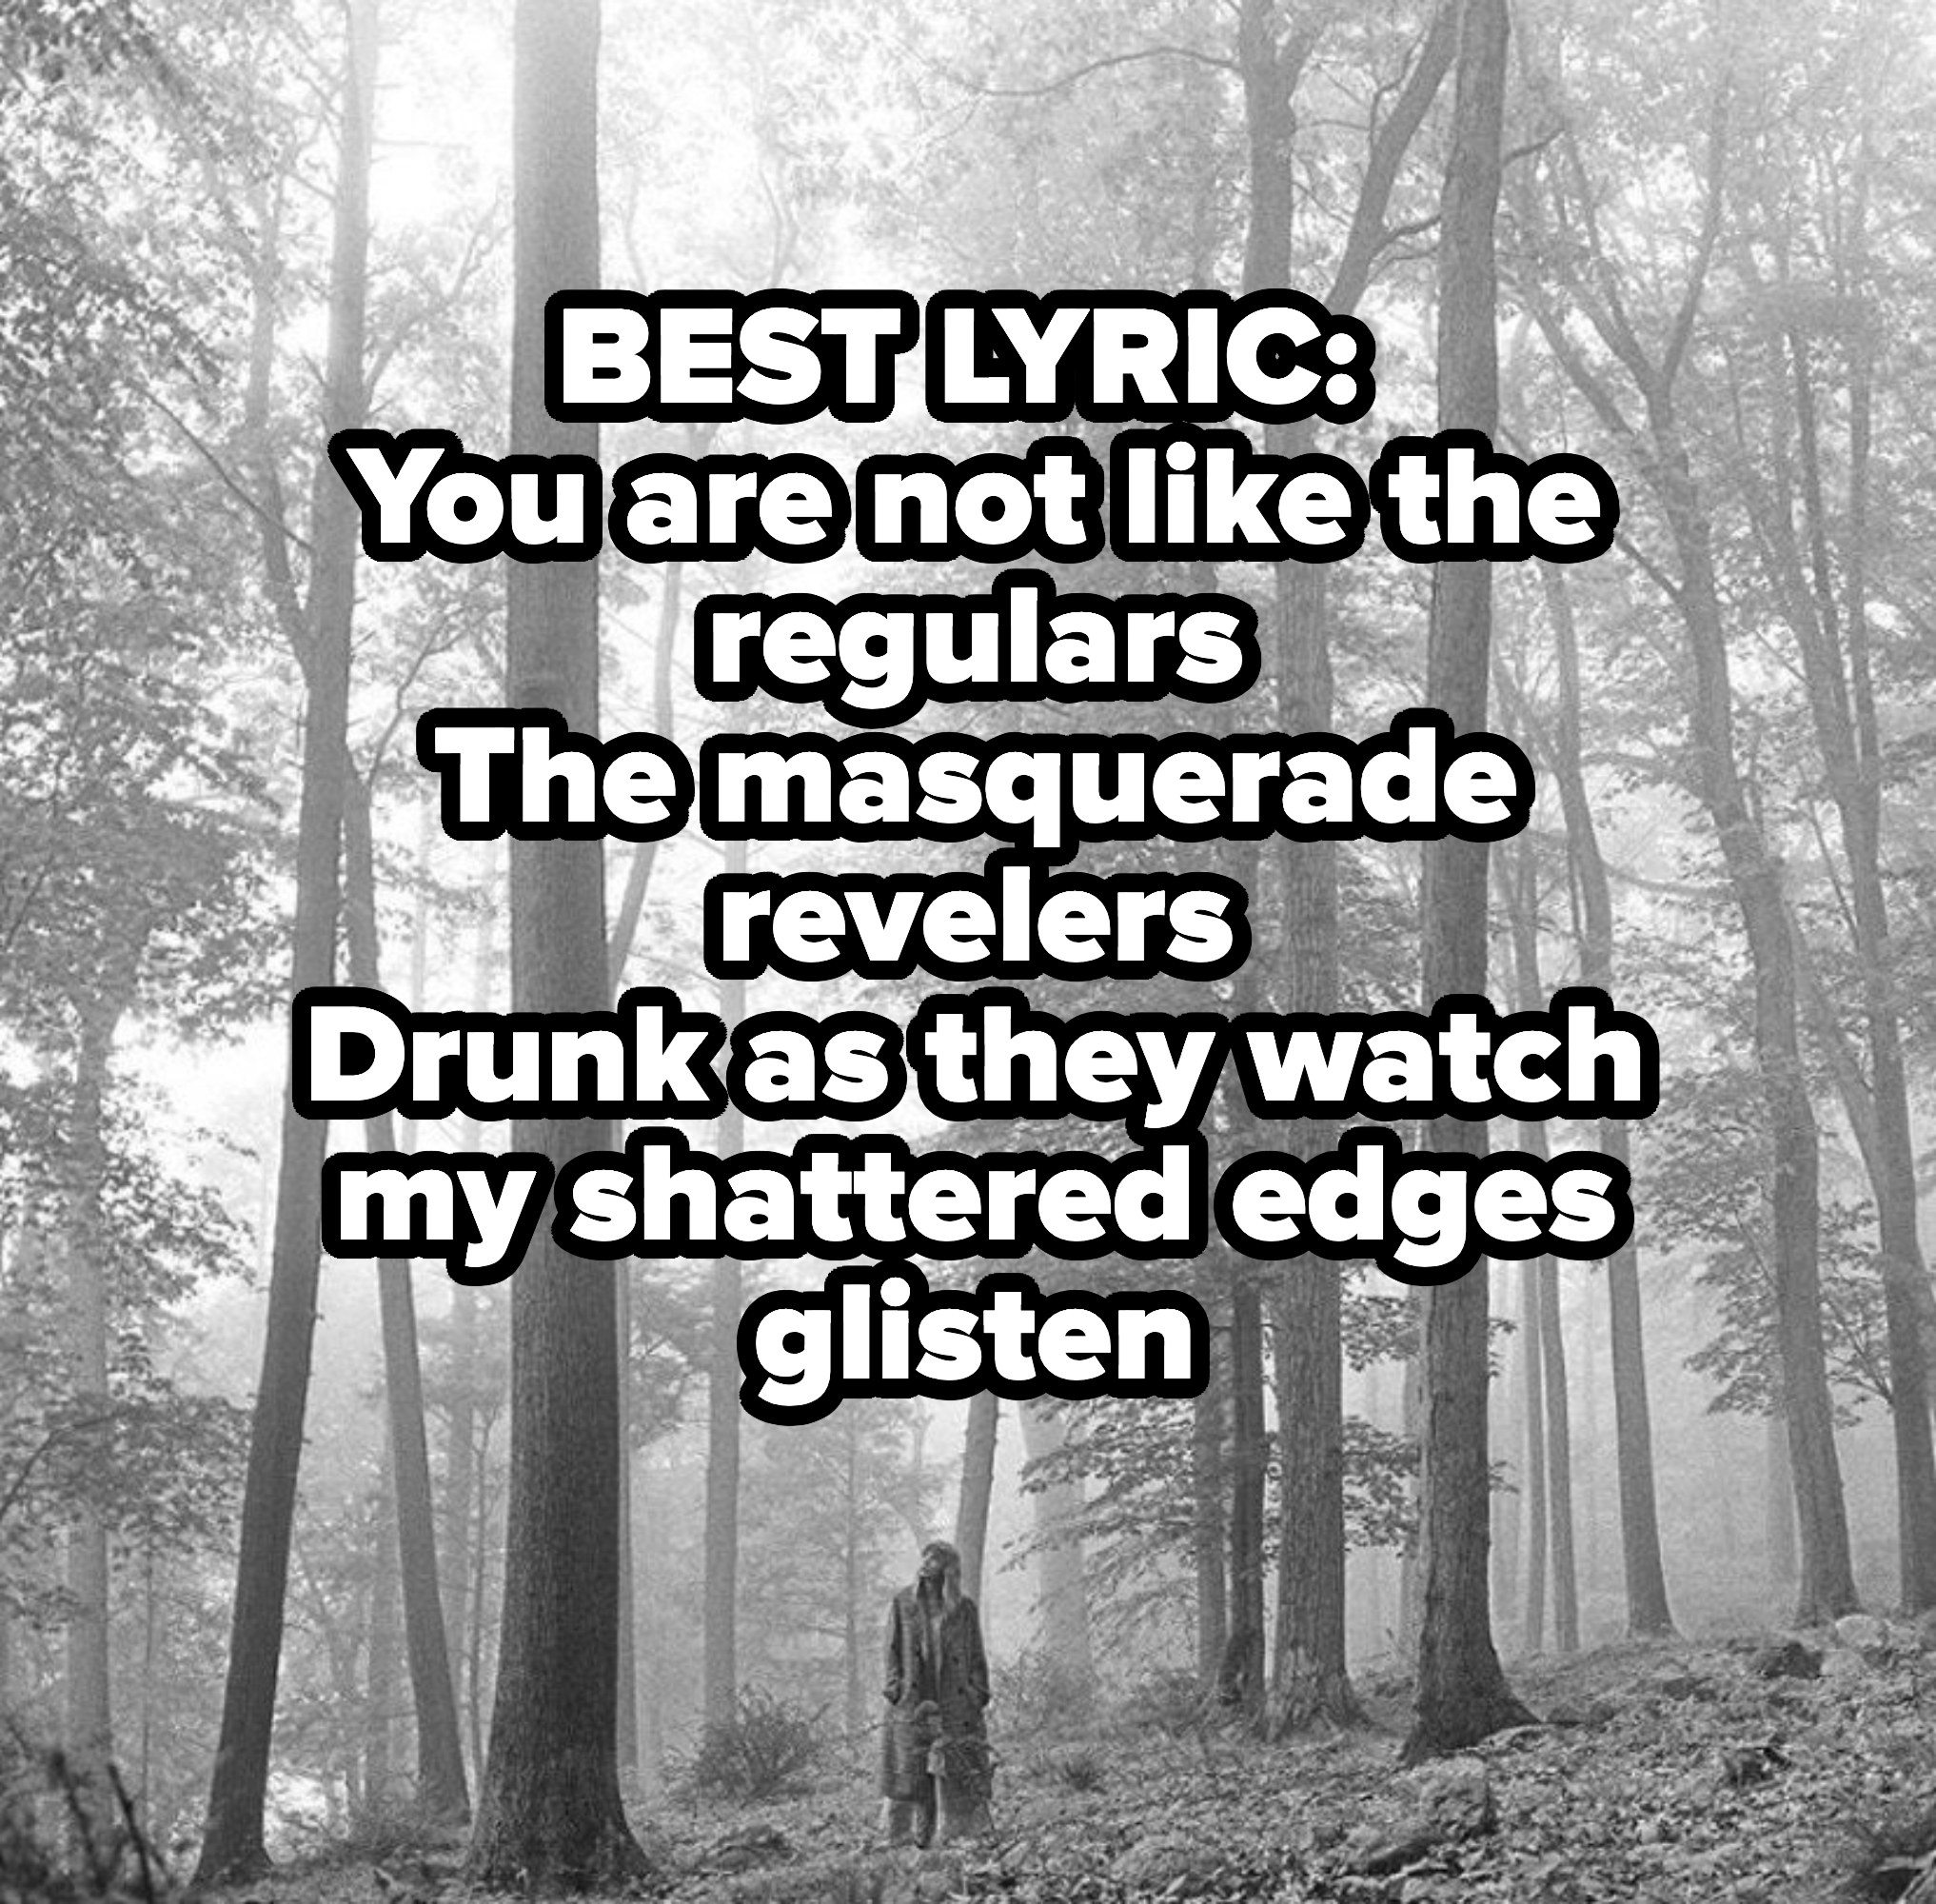 BEST LYRIC: You are not like the regulars The masquerade revelers Drunk as they watch my shattered edges glisten